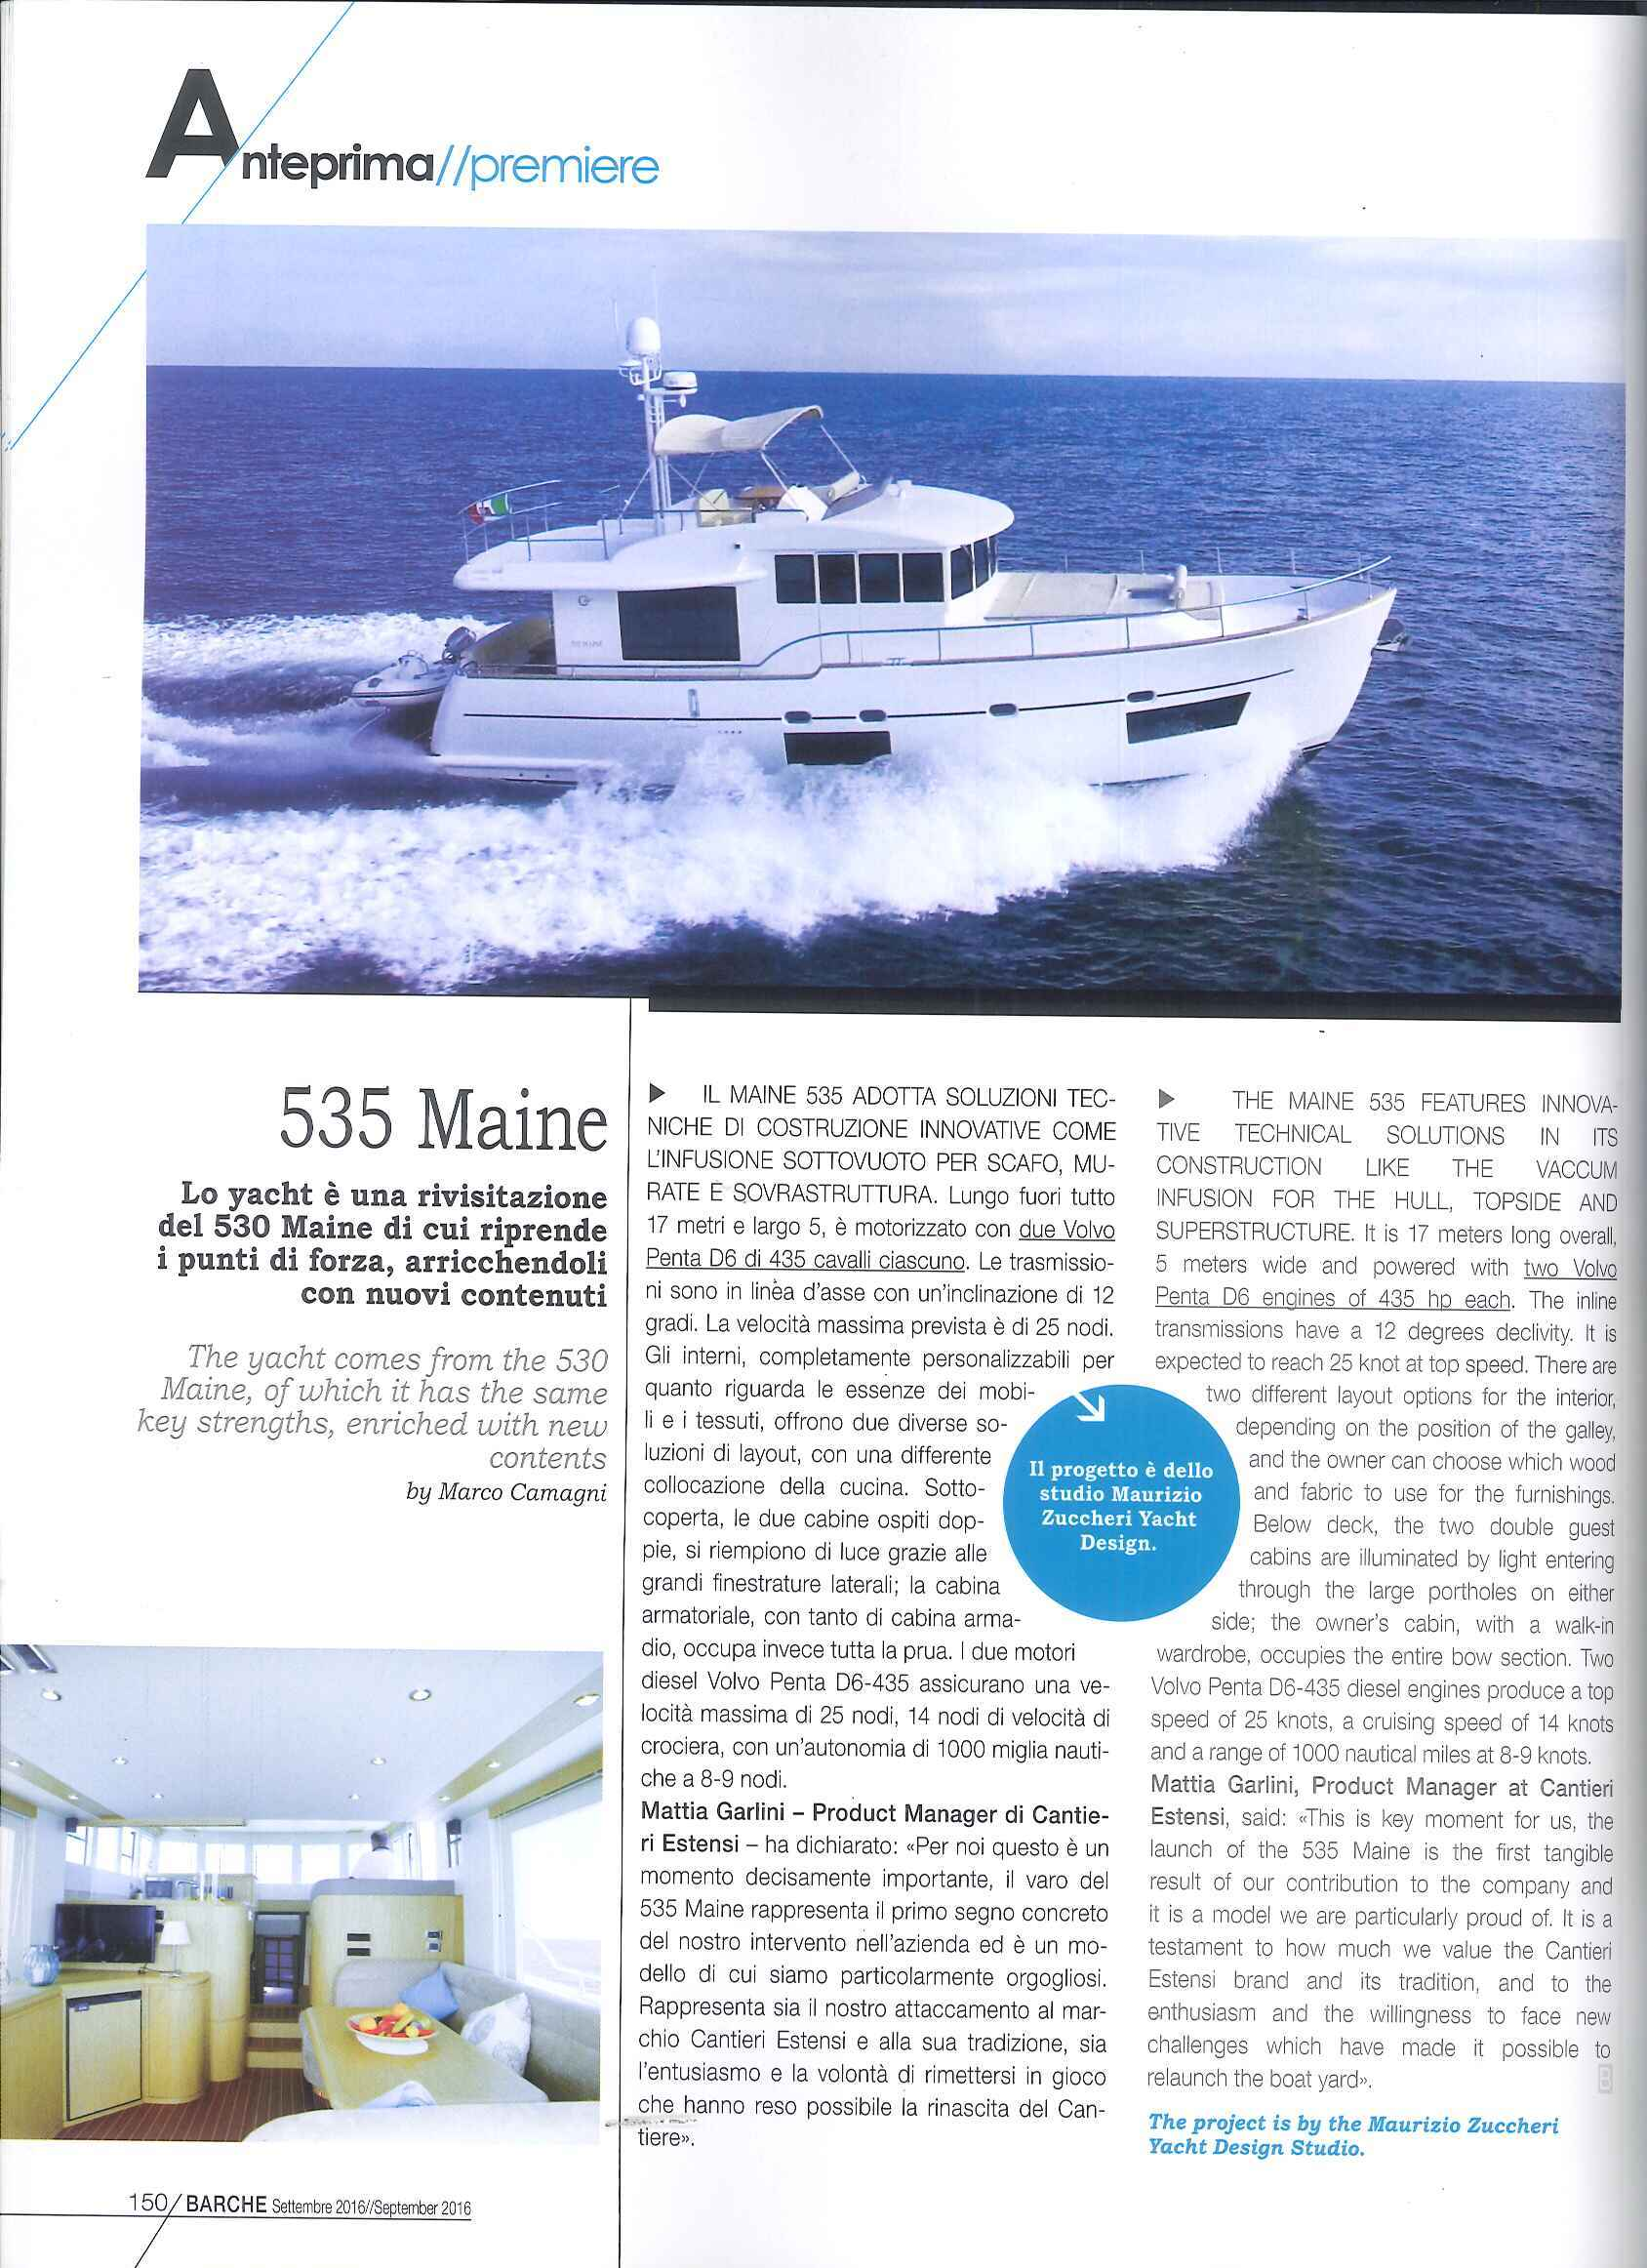 2016 09 PRESS 535 MAINE BARCHE .jpg